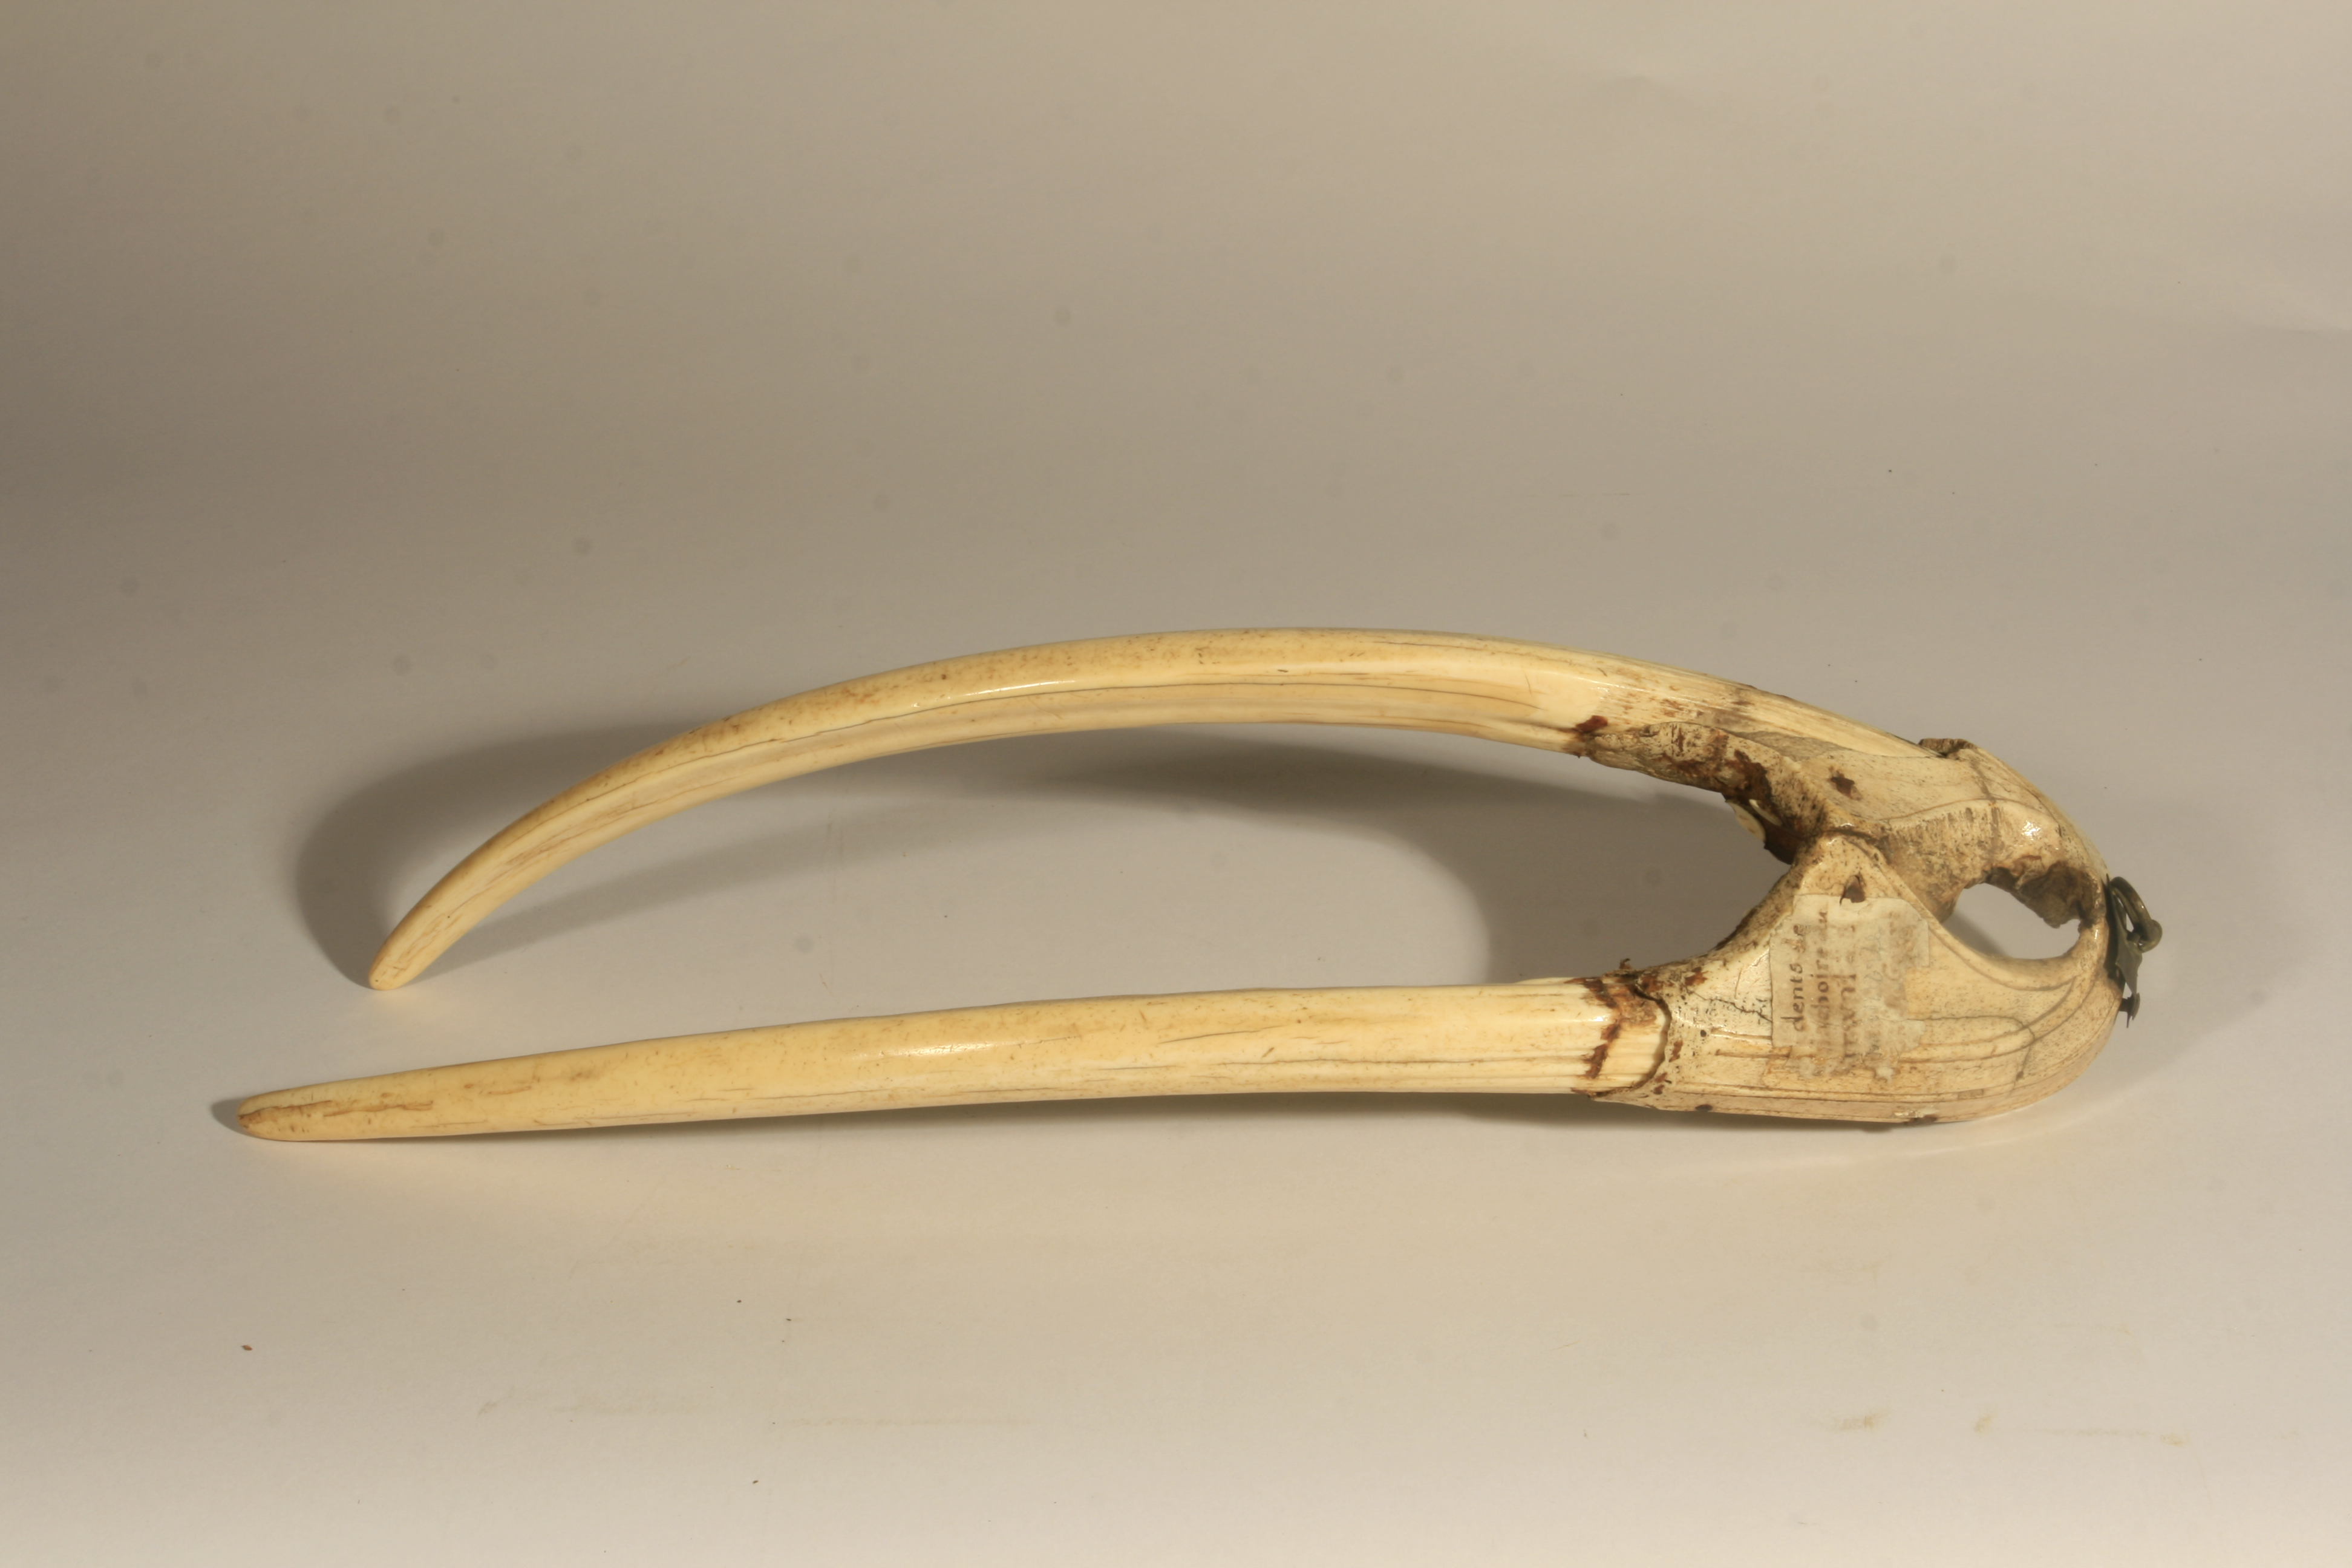 A walrus rostrum with tusks that can be dated to c. 1200-1400 CE.